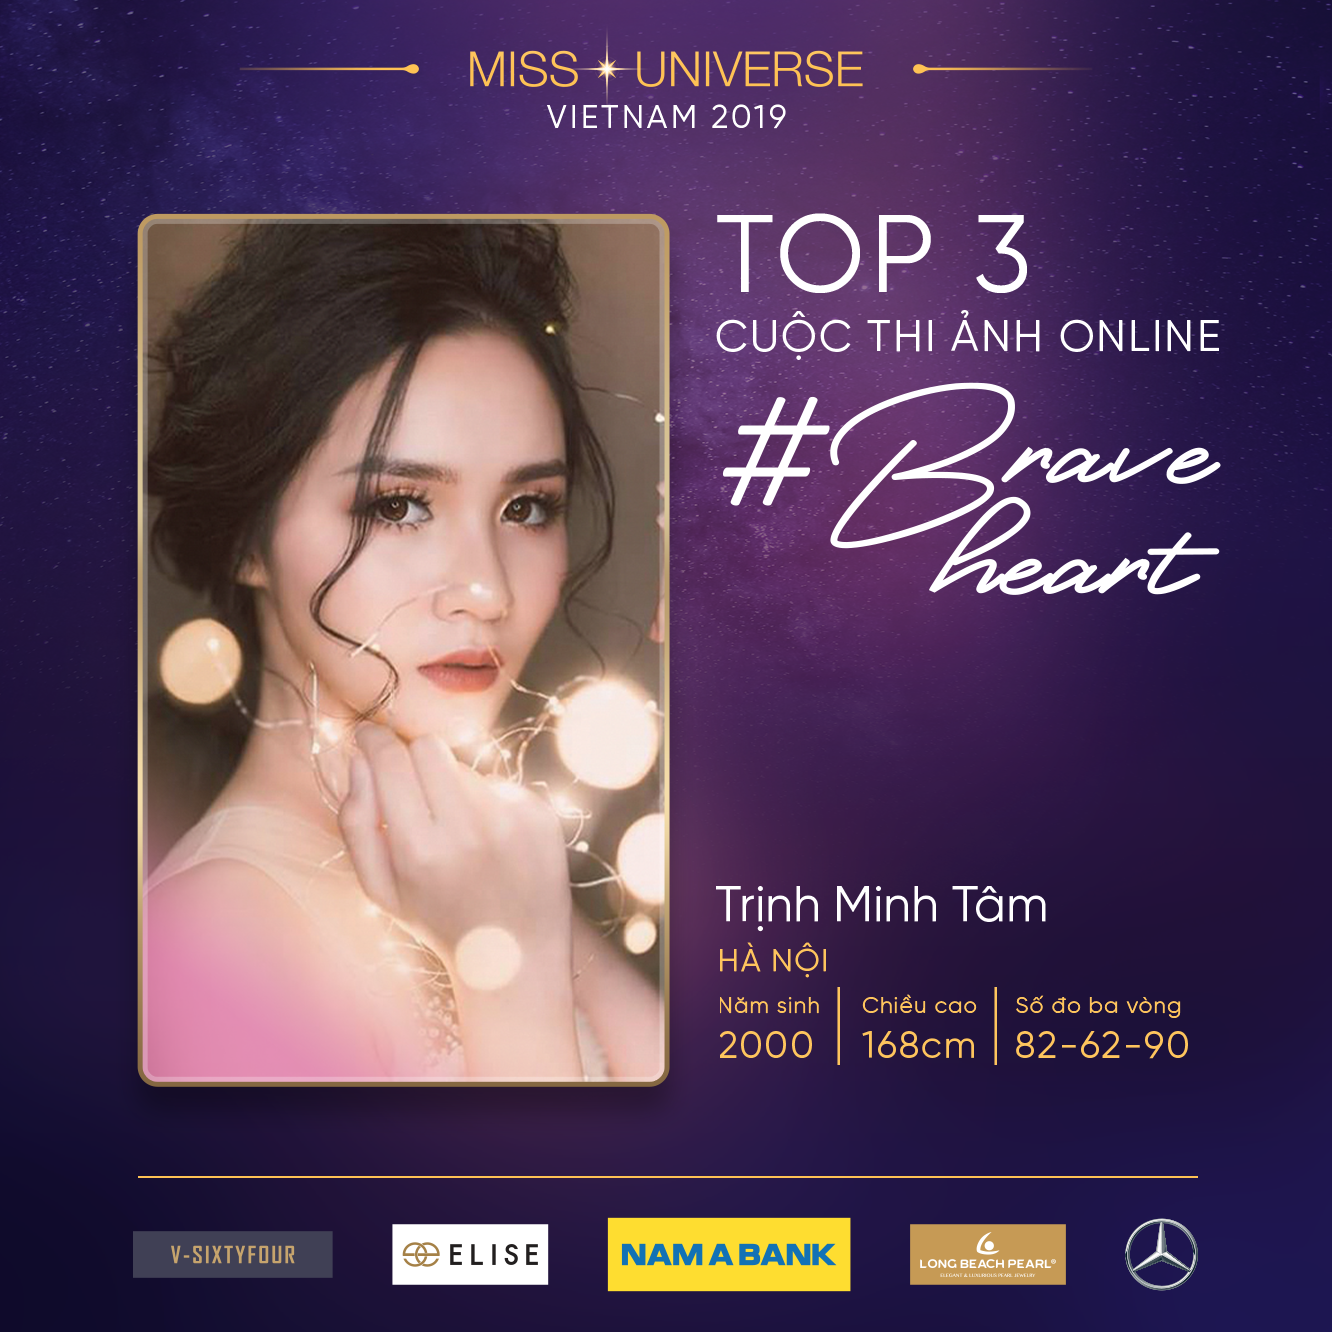 """thuy van gianh chien thang tai cuoc thi anh """"miss universe online"""" hinh anh 3"""